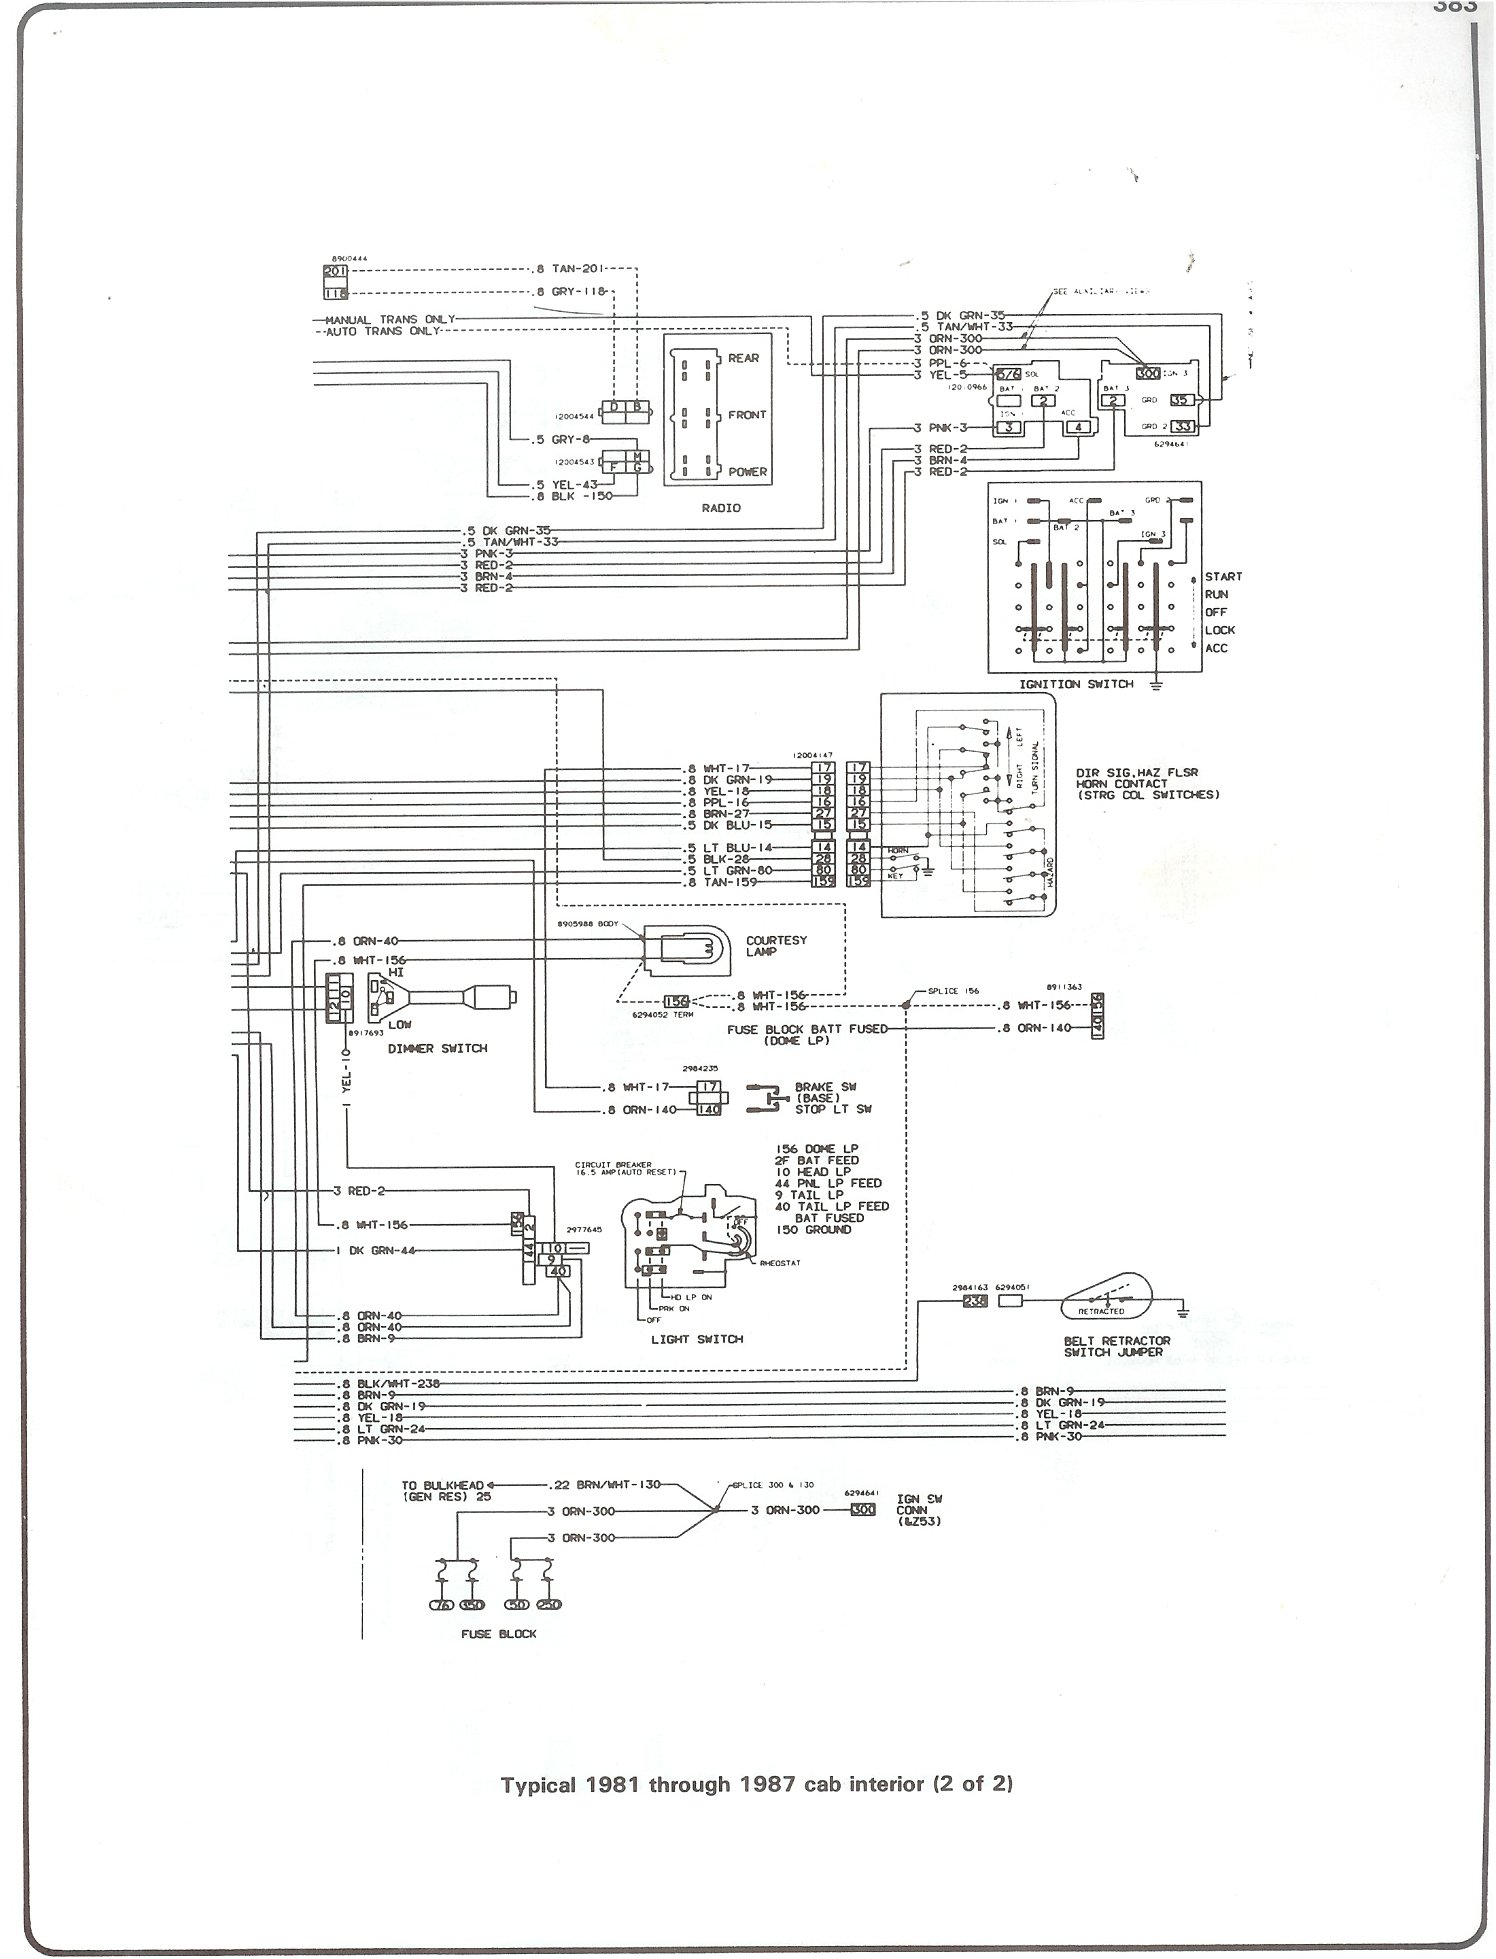 Cab Inter Pg on 1987 Chevy Truck Fuel Pump Wiring Diagram